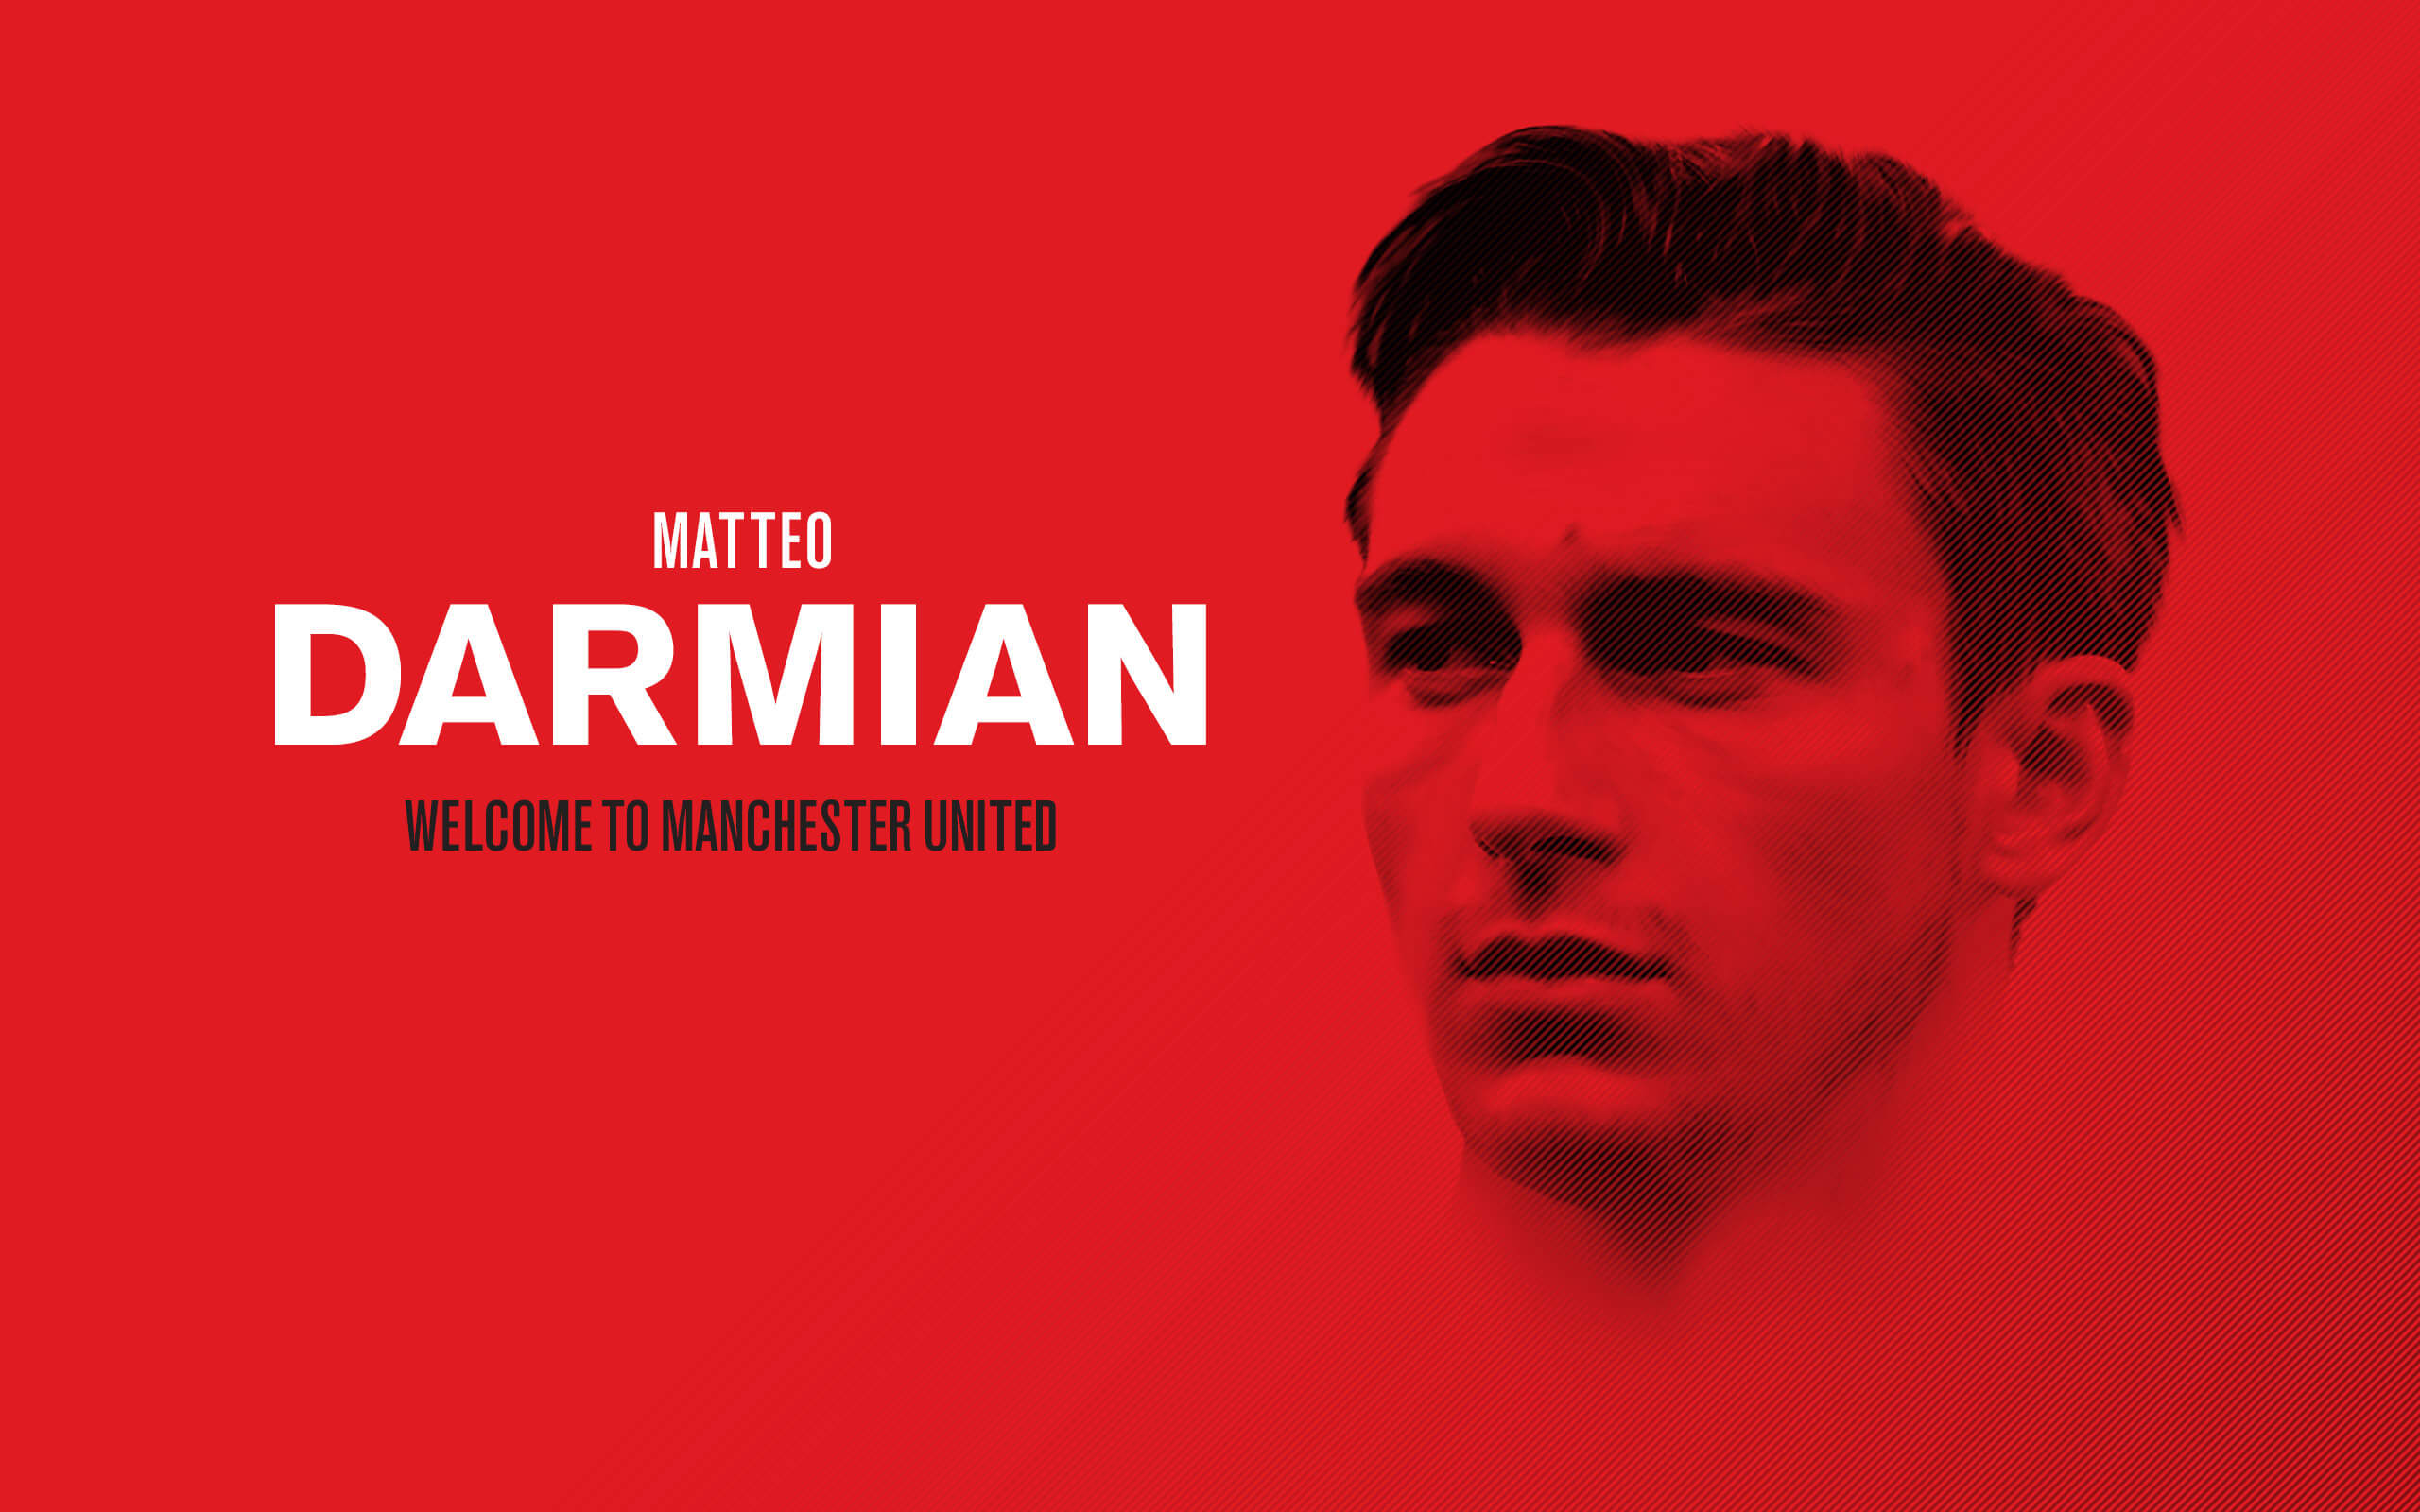 Matteo Darmian Wallpaper: Matteo Darmian 2015 Welcome To Manchester United Wallpapers